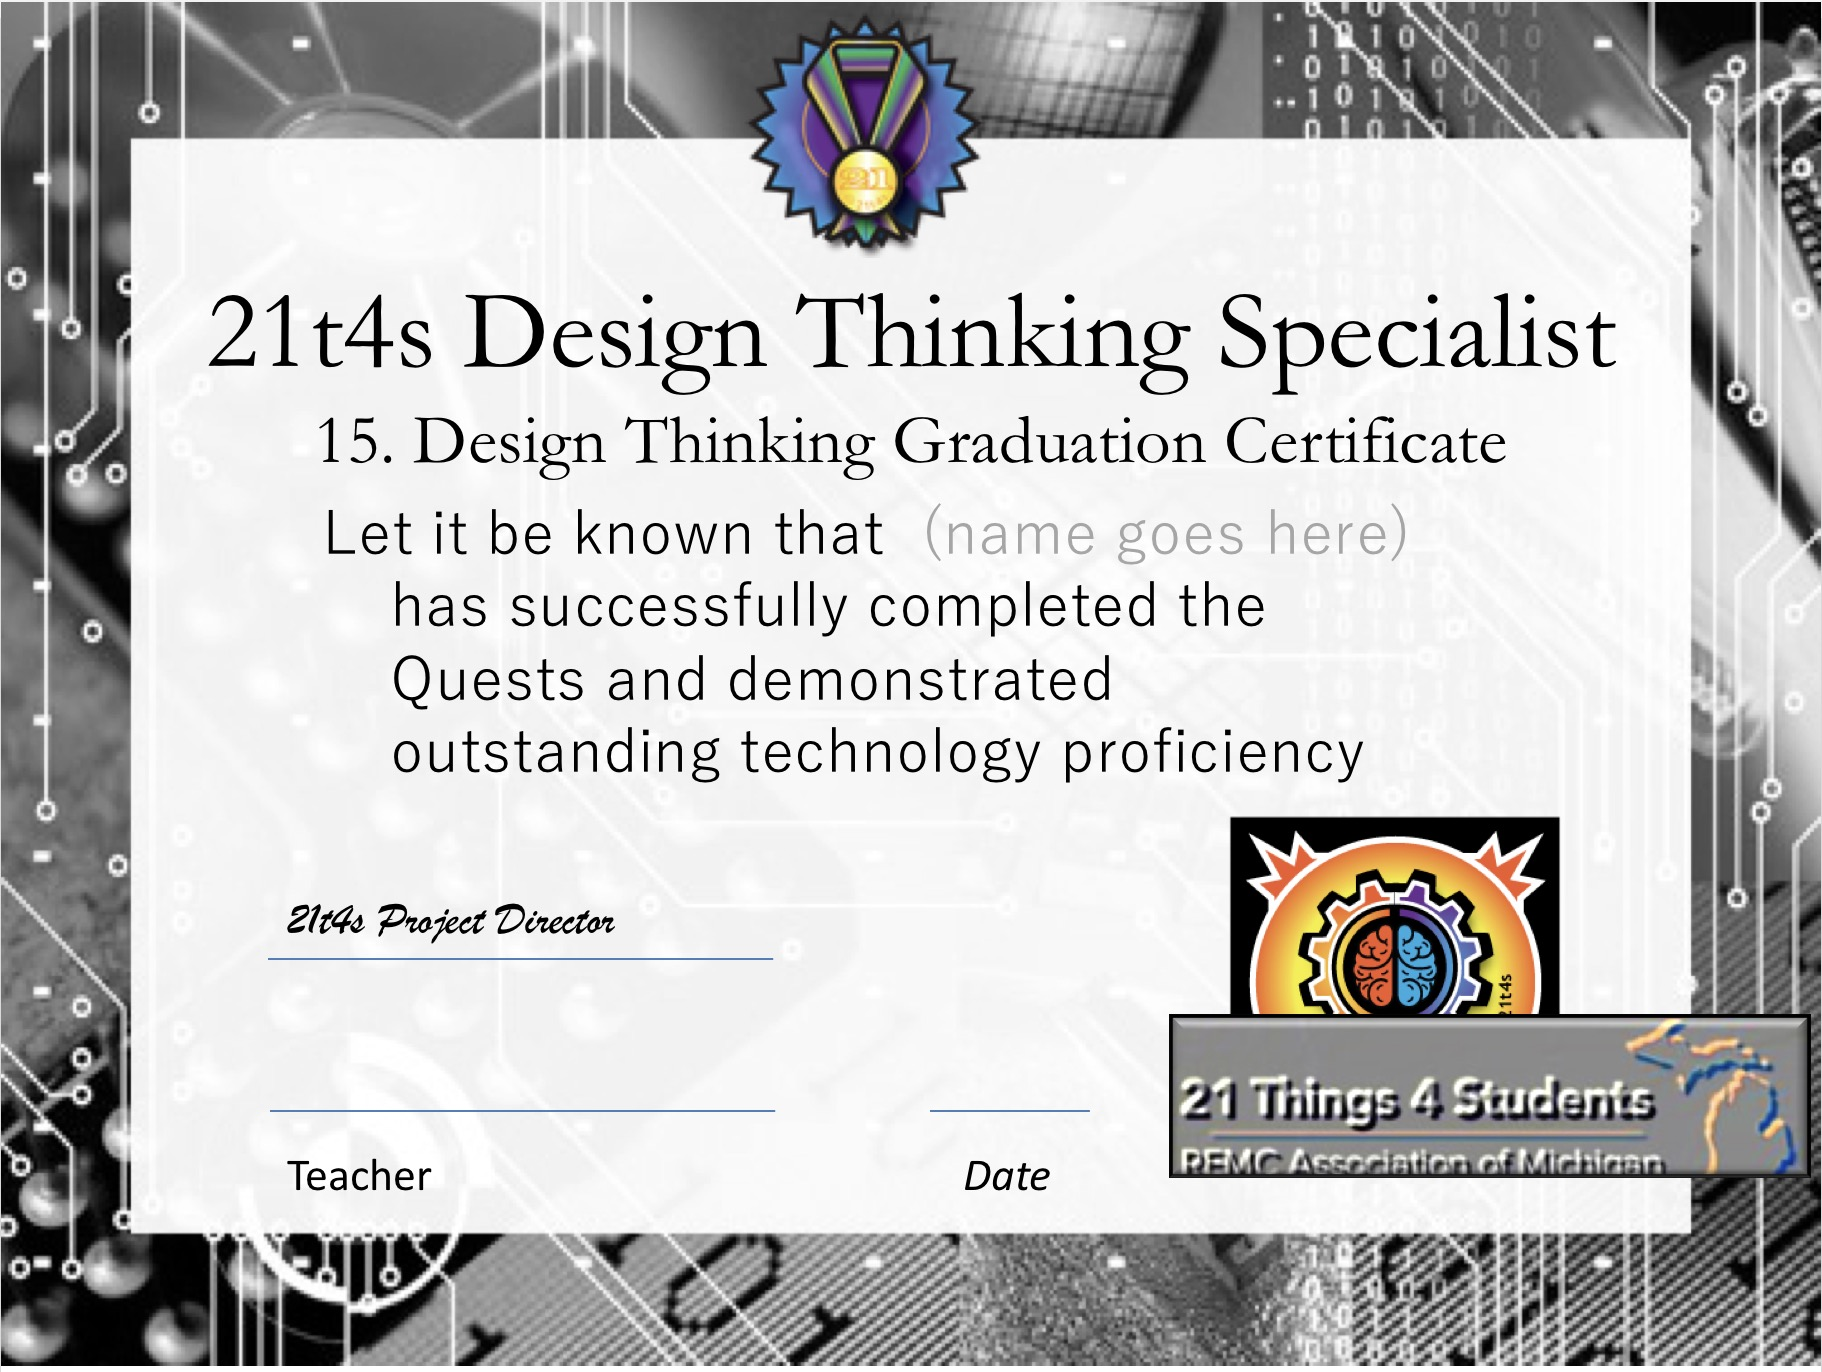 Design Thinking Specialist Graduation Certificate image